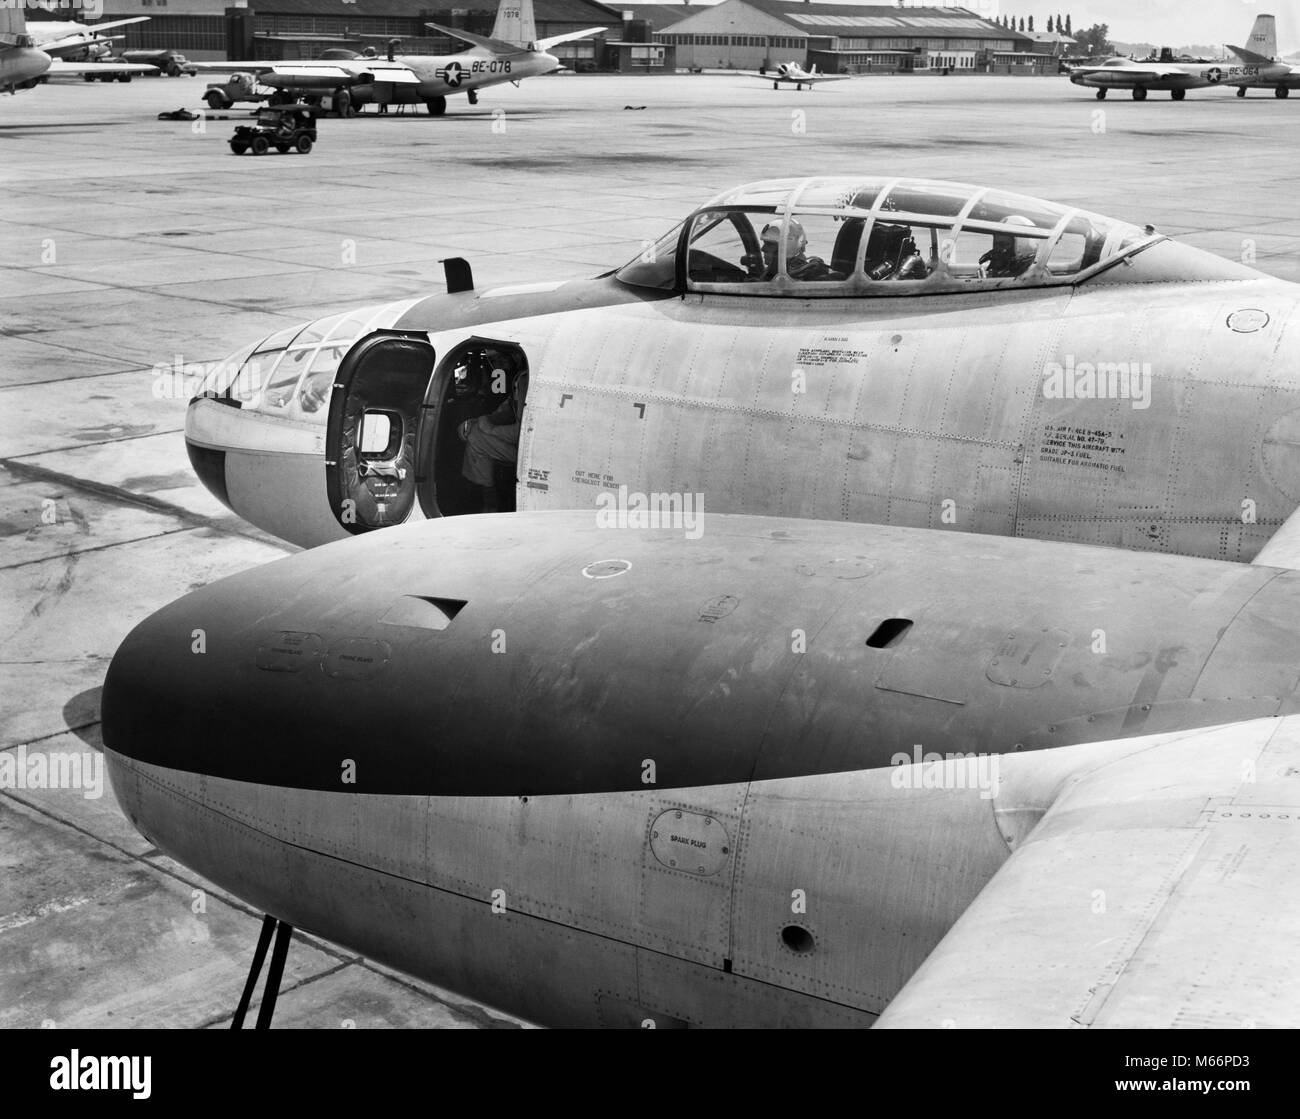 1950s FRONT OF JET AIRPLANE SLIDING COCKPIT FORWARD GUN BAY WITH DOOR OPEN ON TARMAC AT LANGLEY AIR FORCE BASE HAMPTON - Stock Image